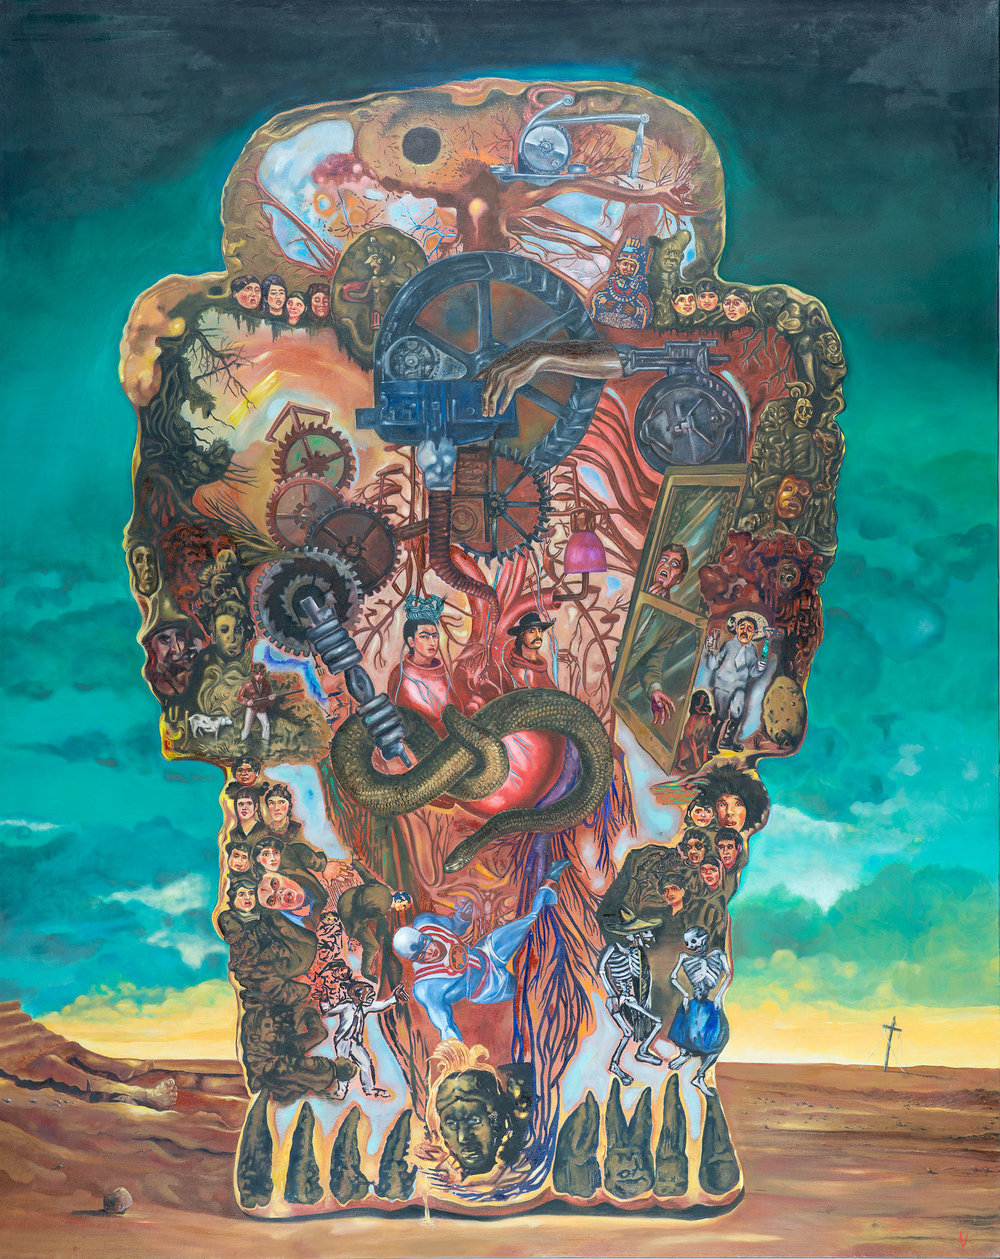 "Title: Coatlicue  Dimensions: 46"" x 54""  Medium: Oil on canvas  Date: 2010  Notes: The outer contours of the Aztec earth deity Coatlicue unify a multitude of smaller images that connect to themes of Mexican history, American hegemony, Spanish colonialism and the dichotomy between Nature and machine. The viewer is encouraged to think of national identity as an organic whole shot through with channels, veins and branches interconnecting the disparate parts."